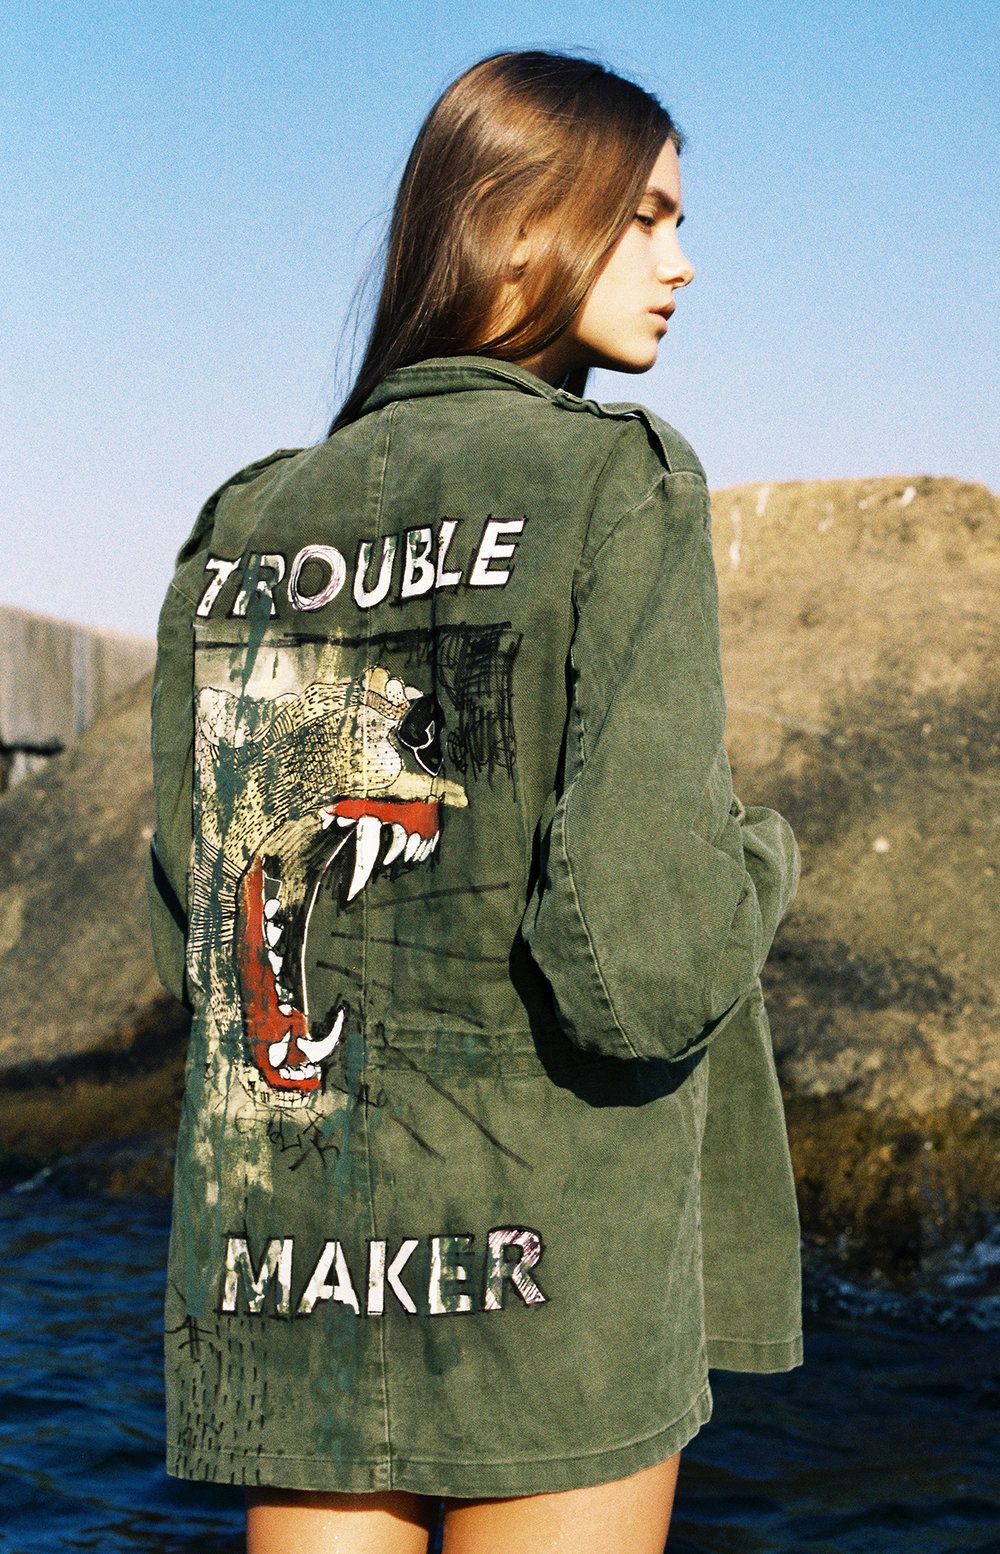 'Trouble Maker' Hand Painted Army Jacket